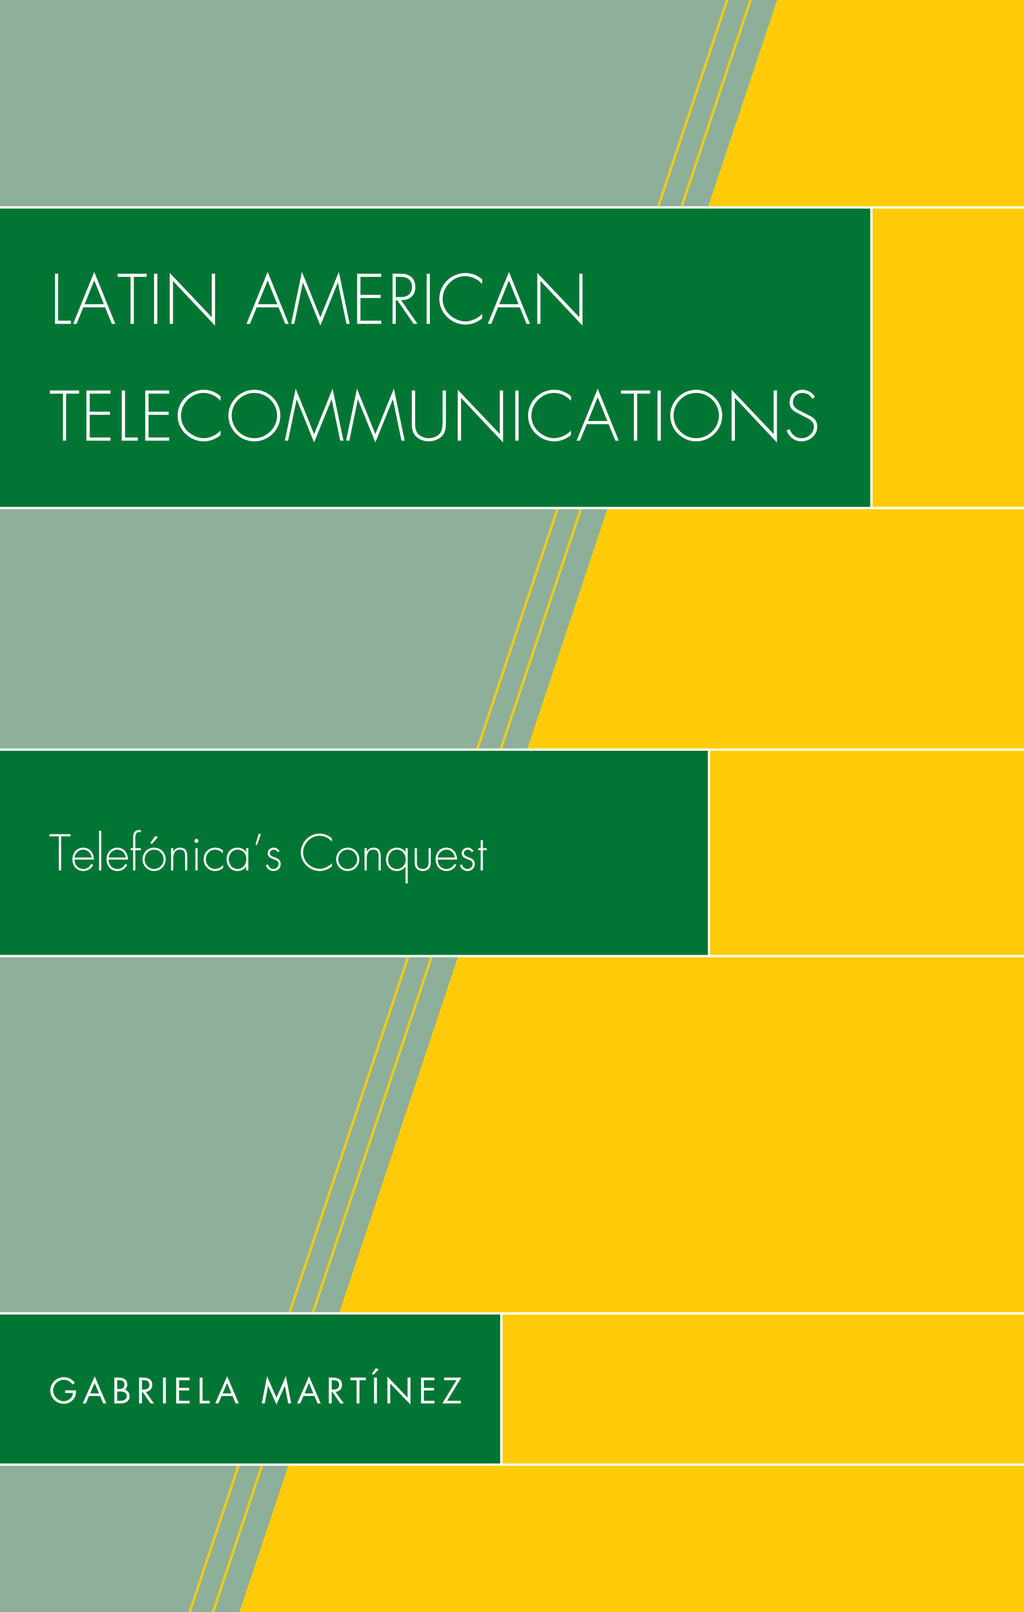 Latin American Telecommunications